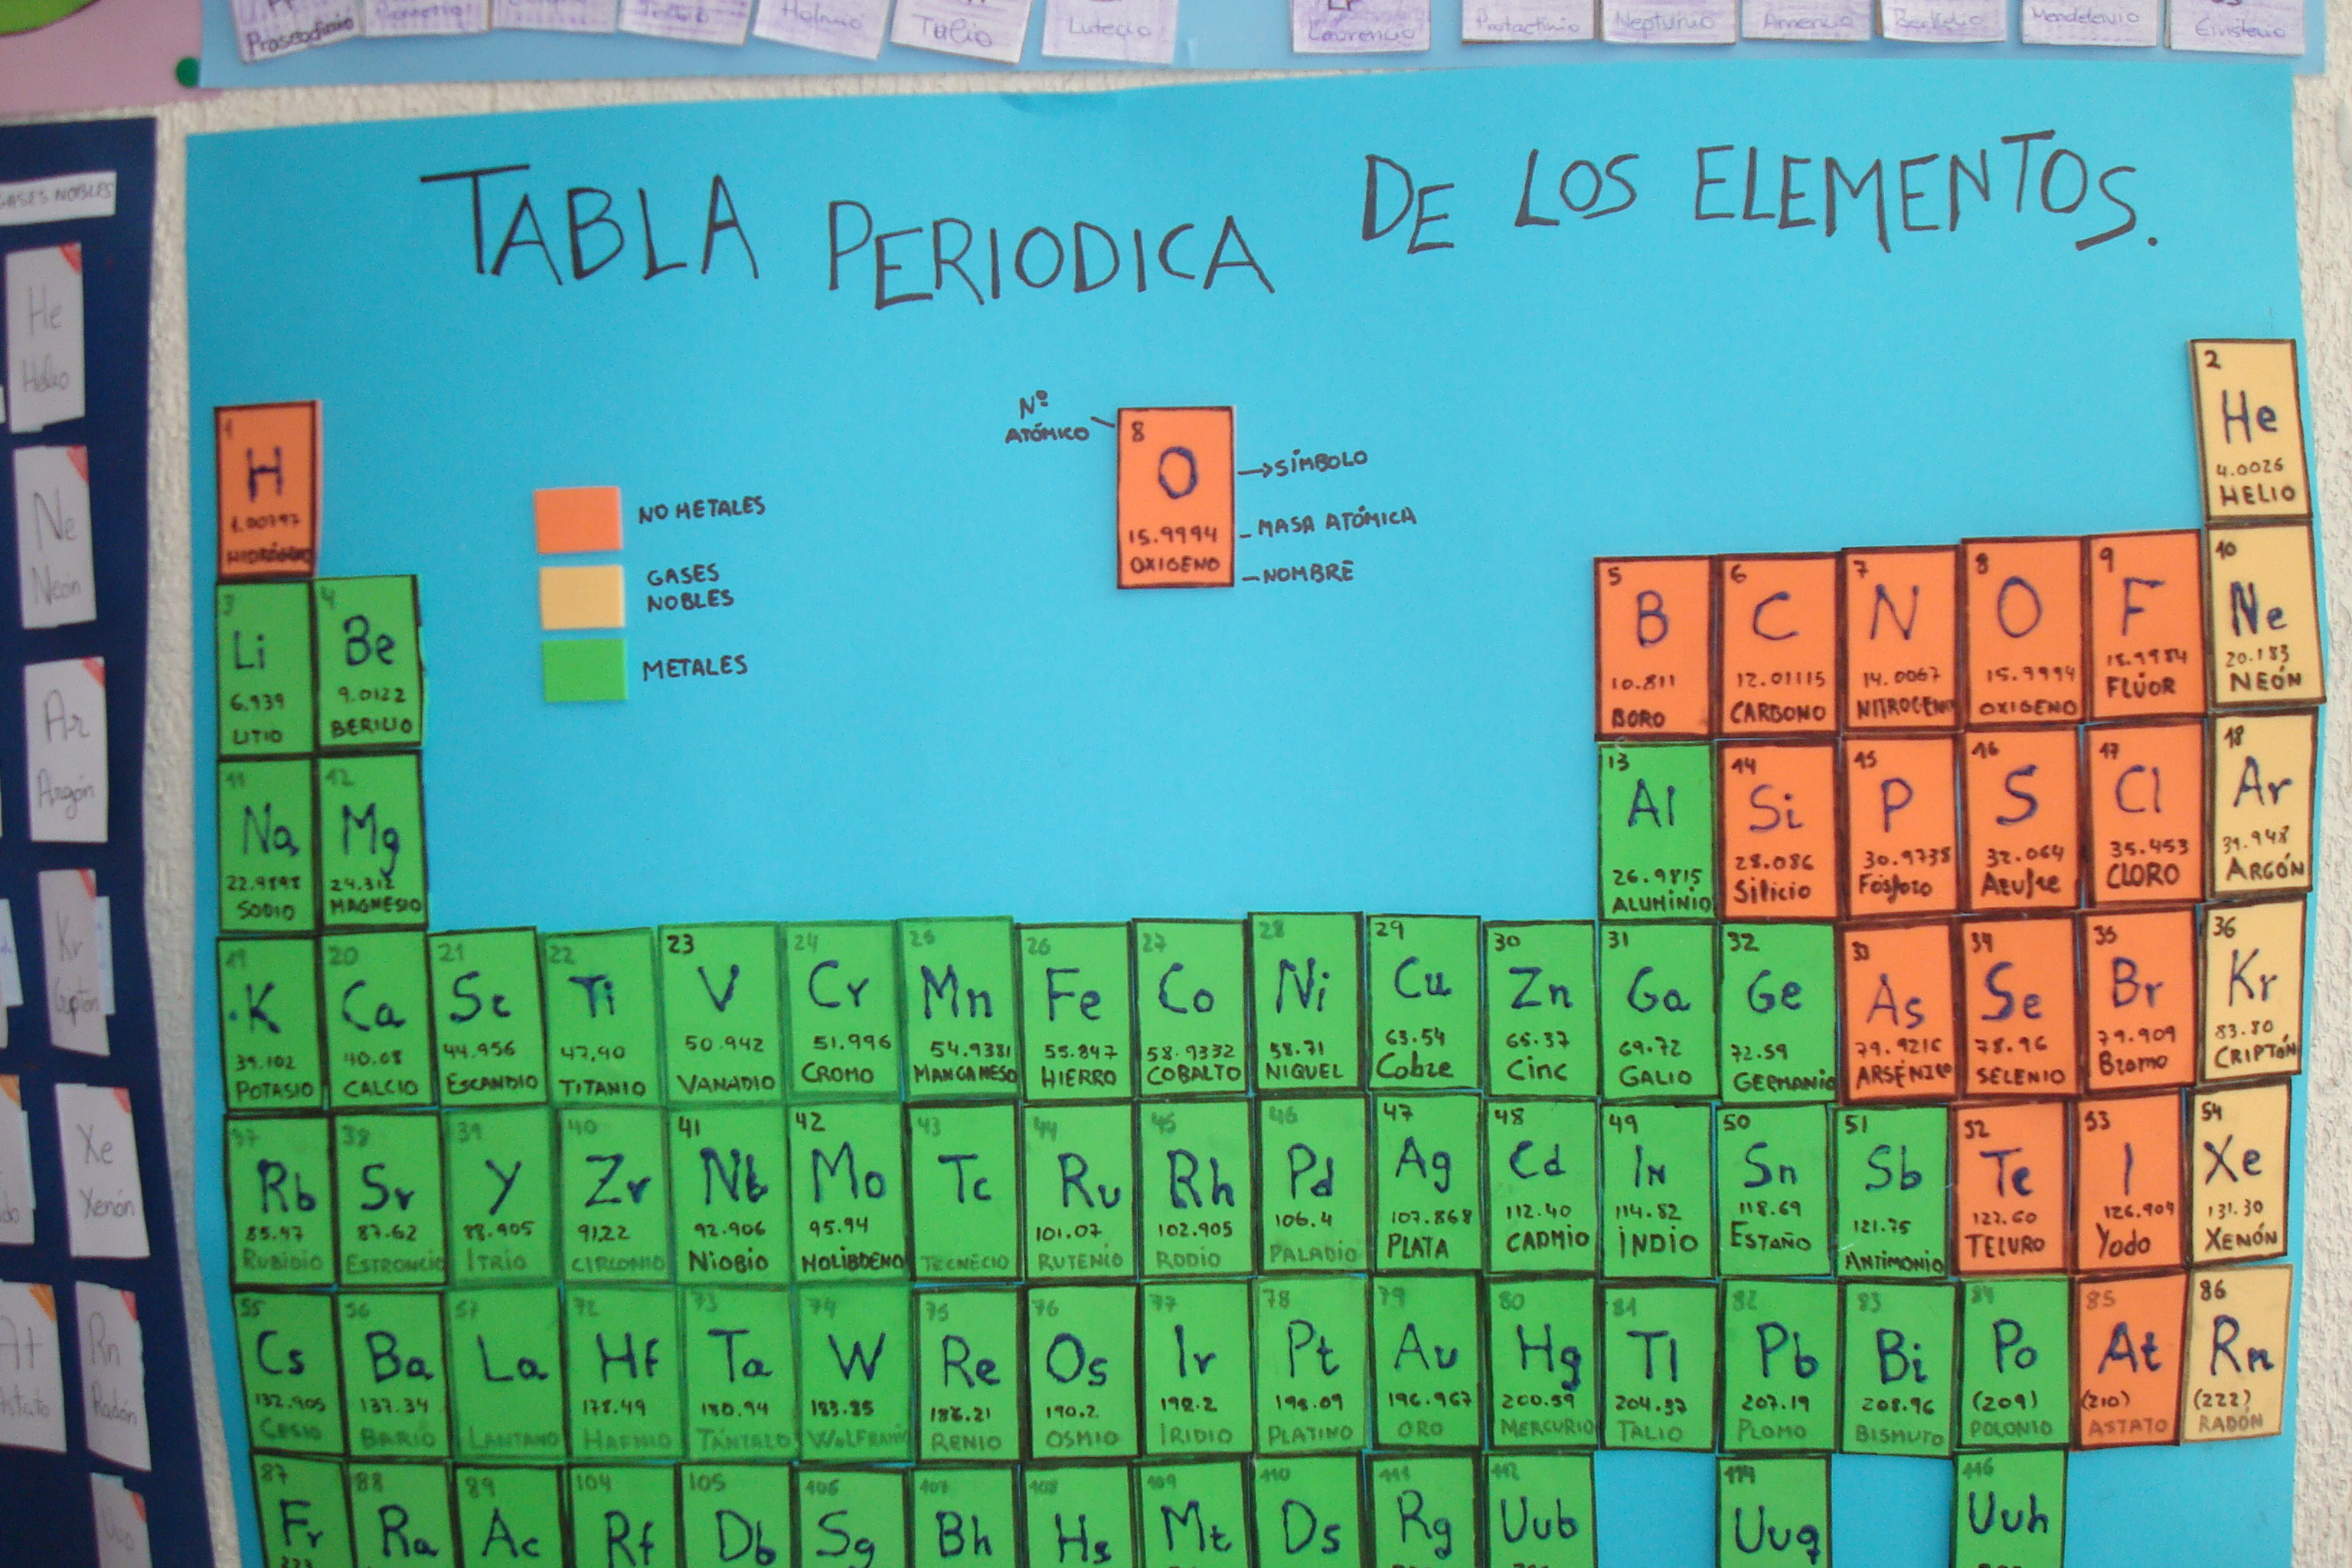 Tabla peridica de elementos qumicos periodic tables of the spang urtaz Gallery